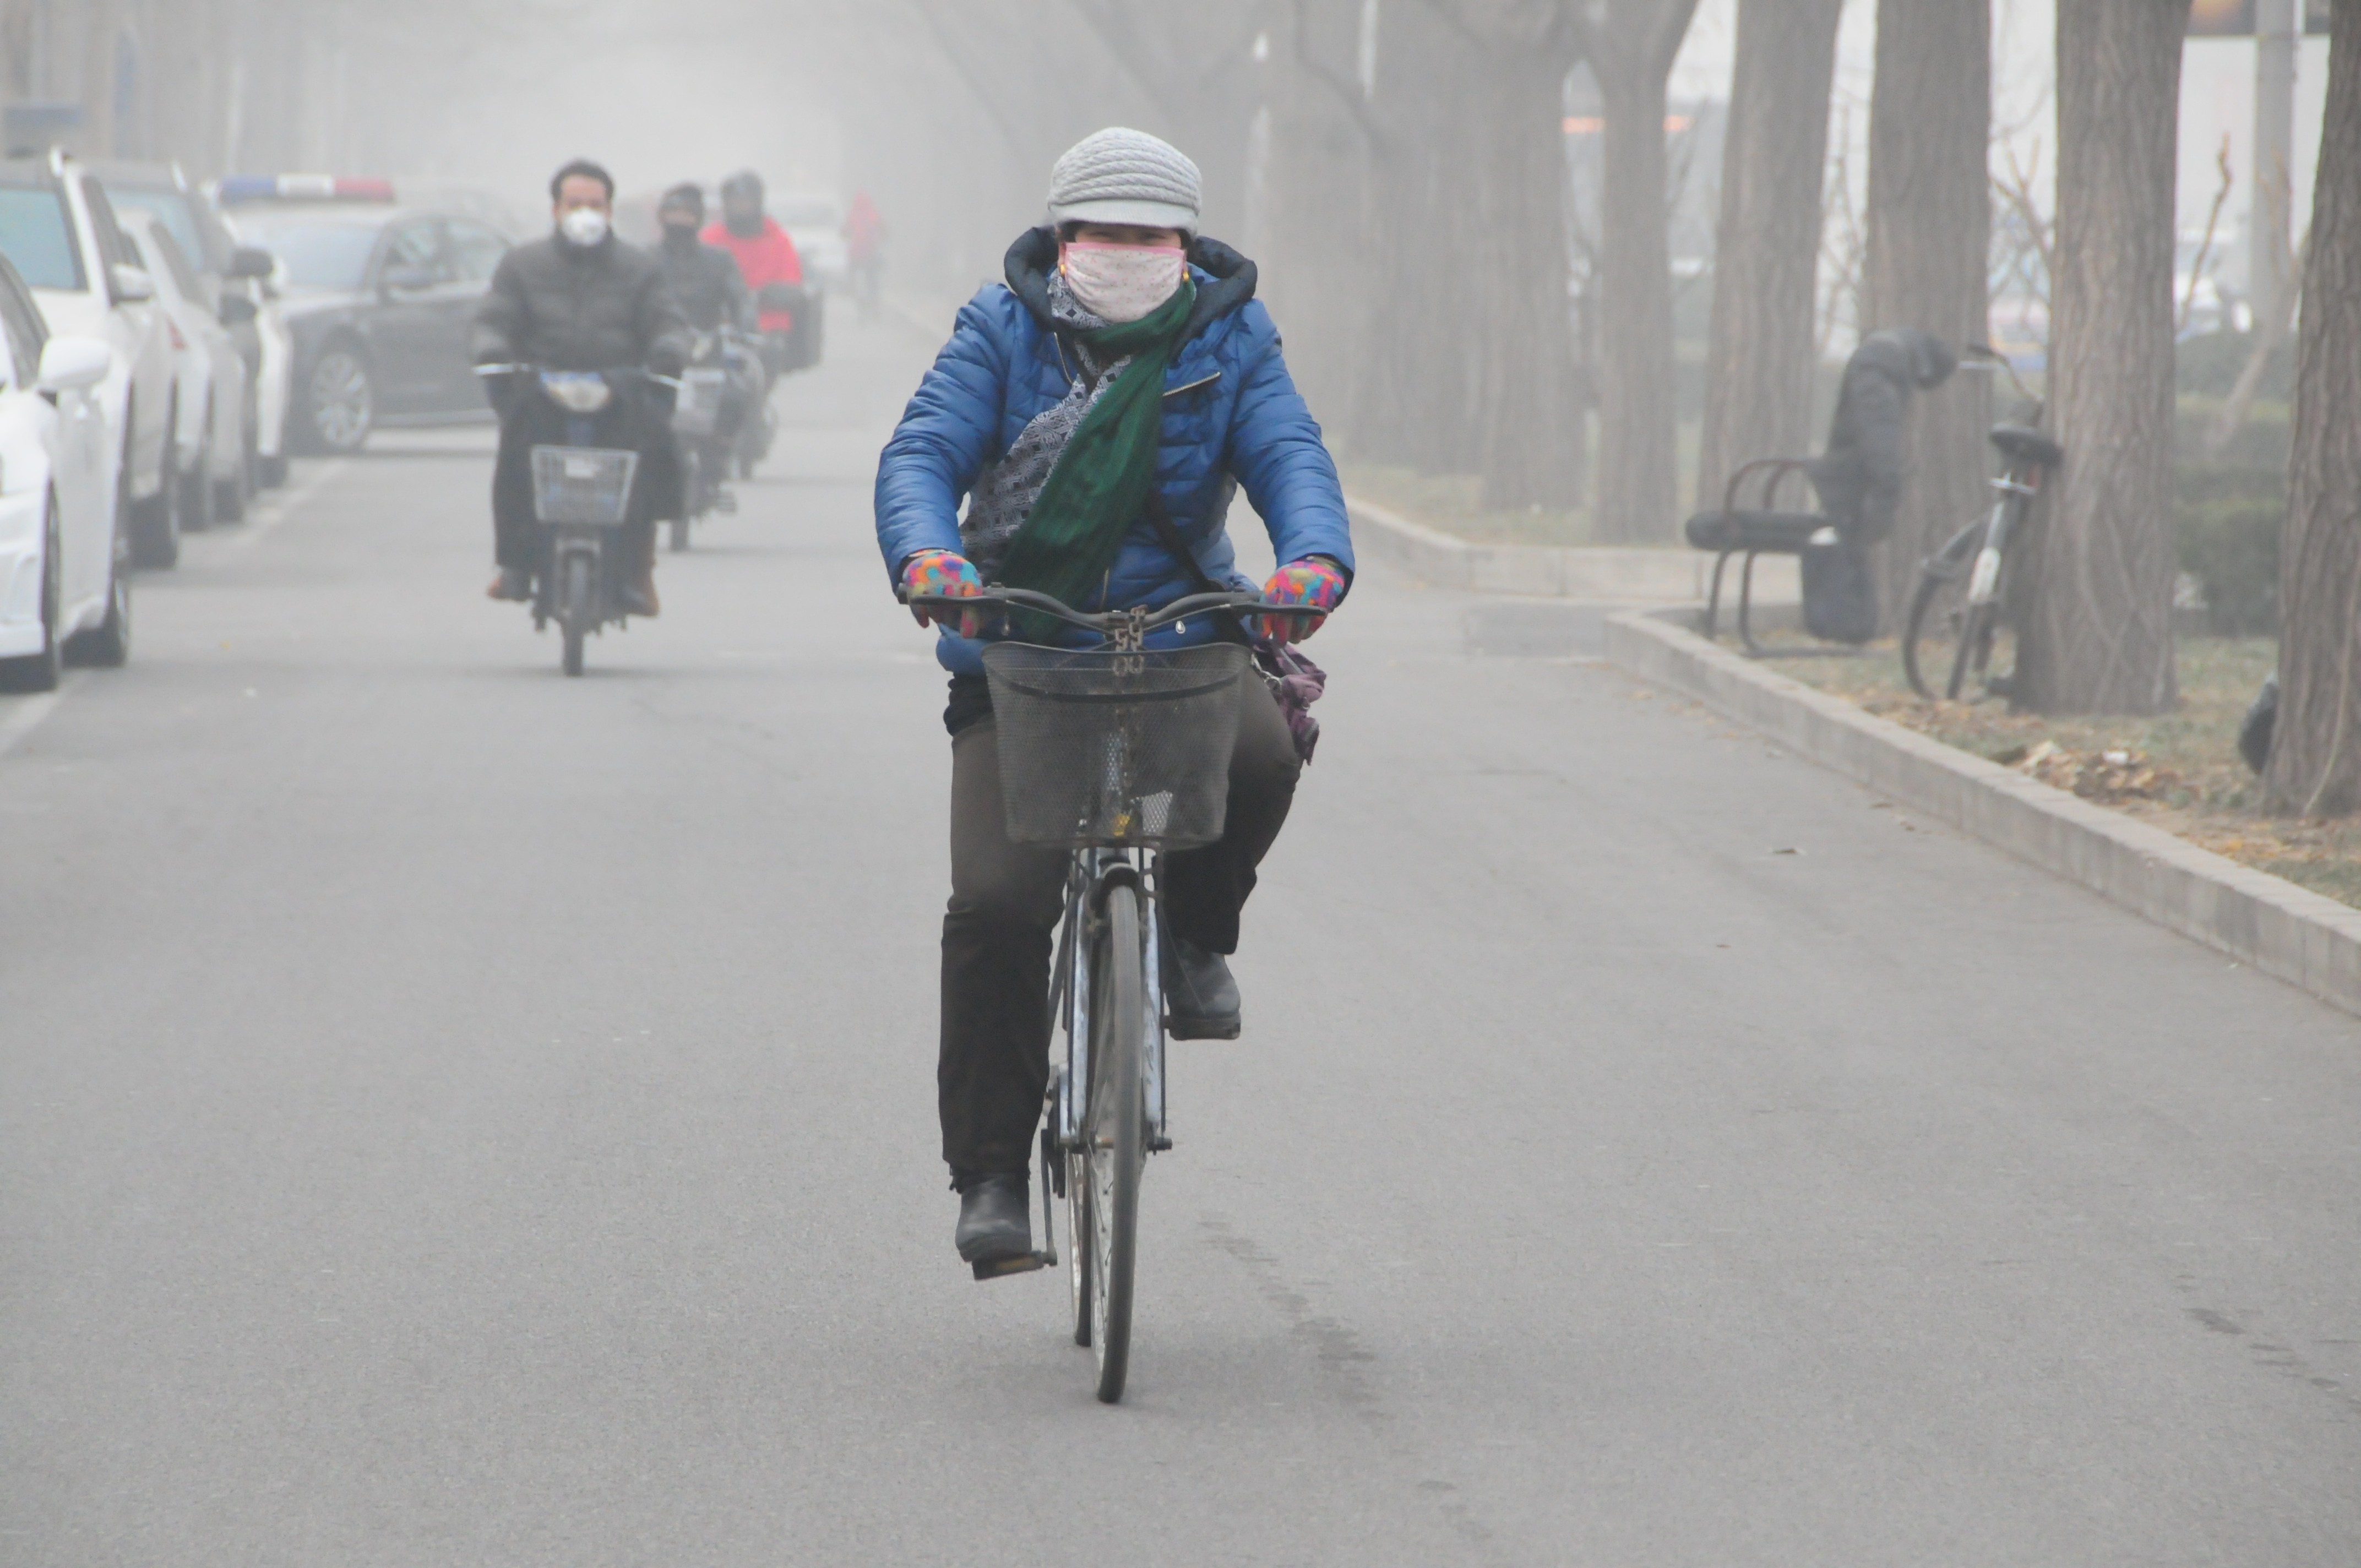 China issues red alert for smog in 10 cities